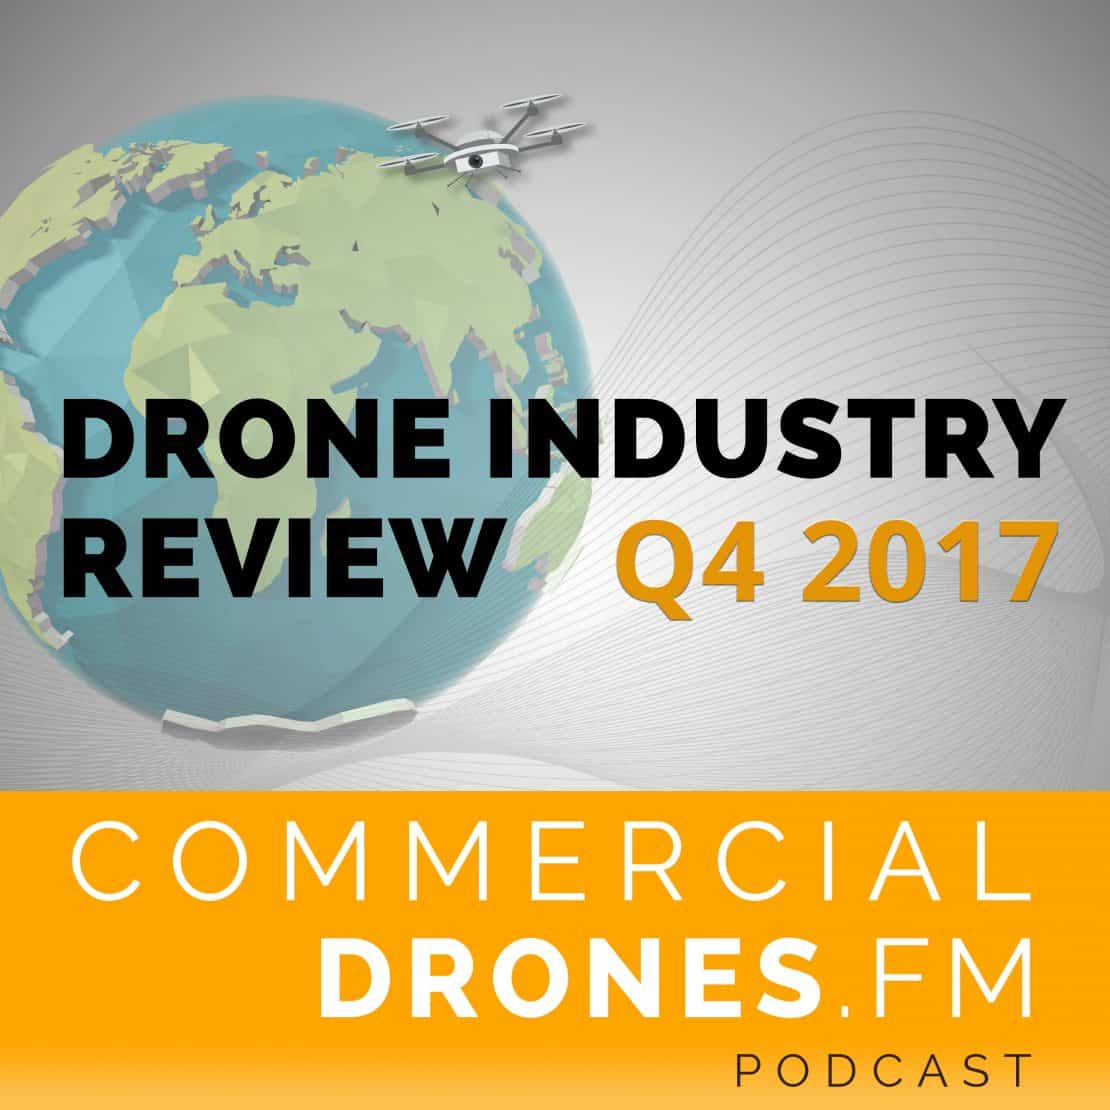 Drone Industry Review: Q4 2017